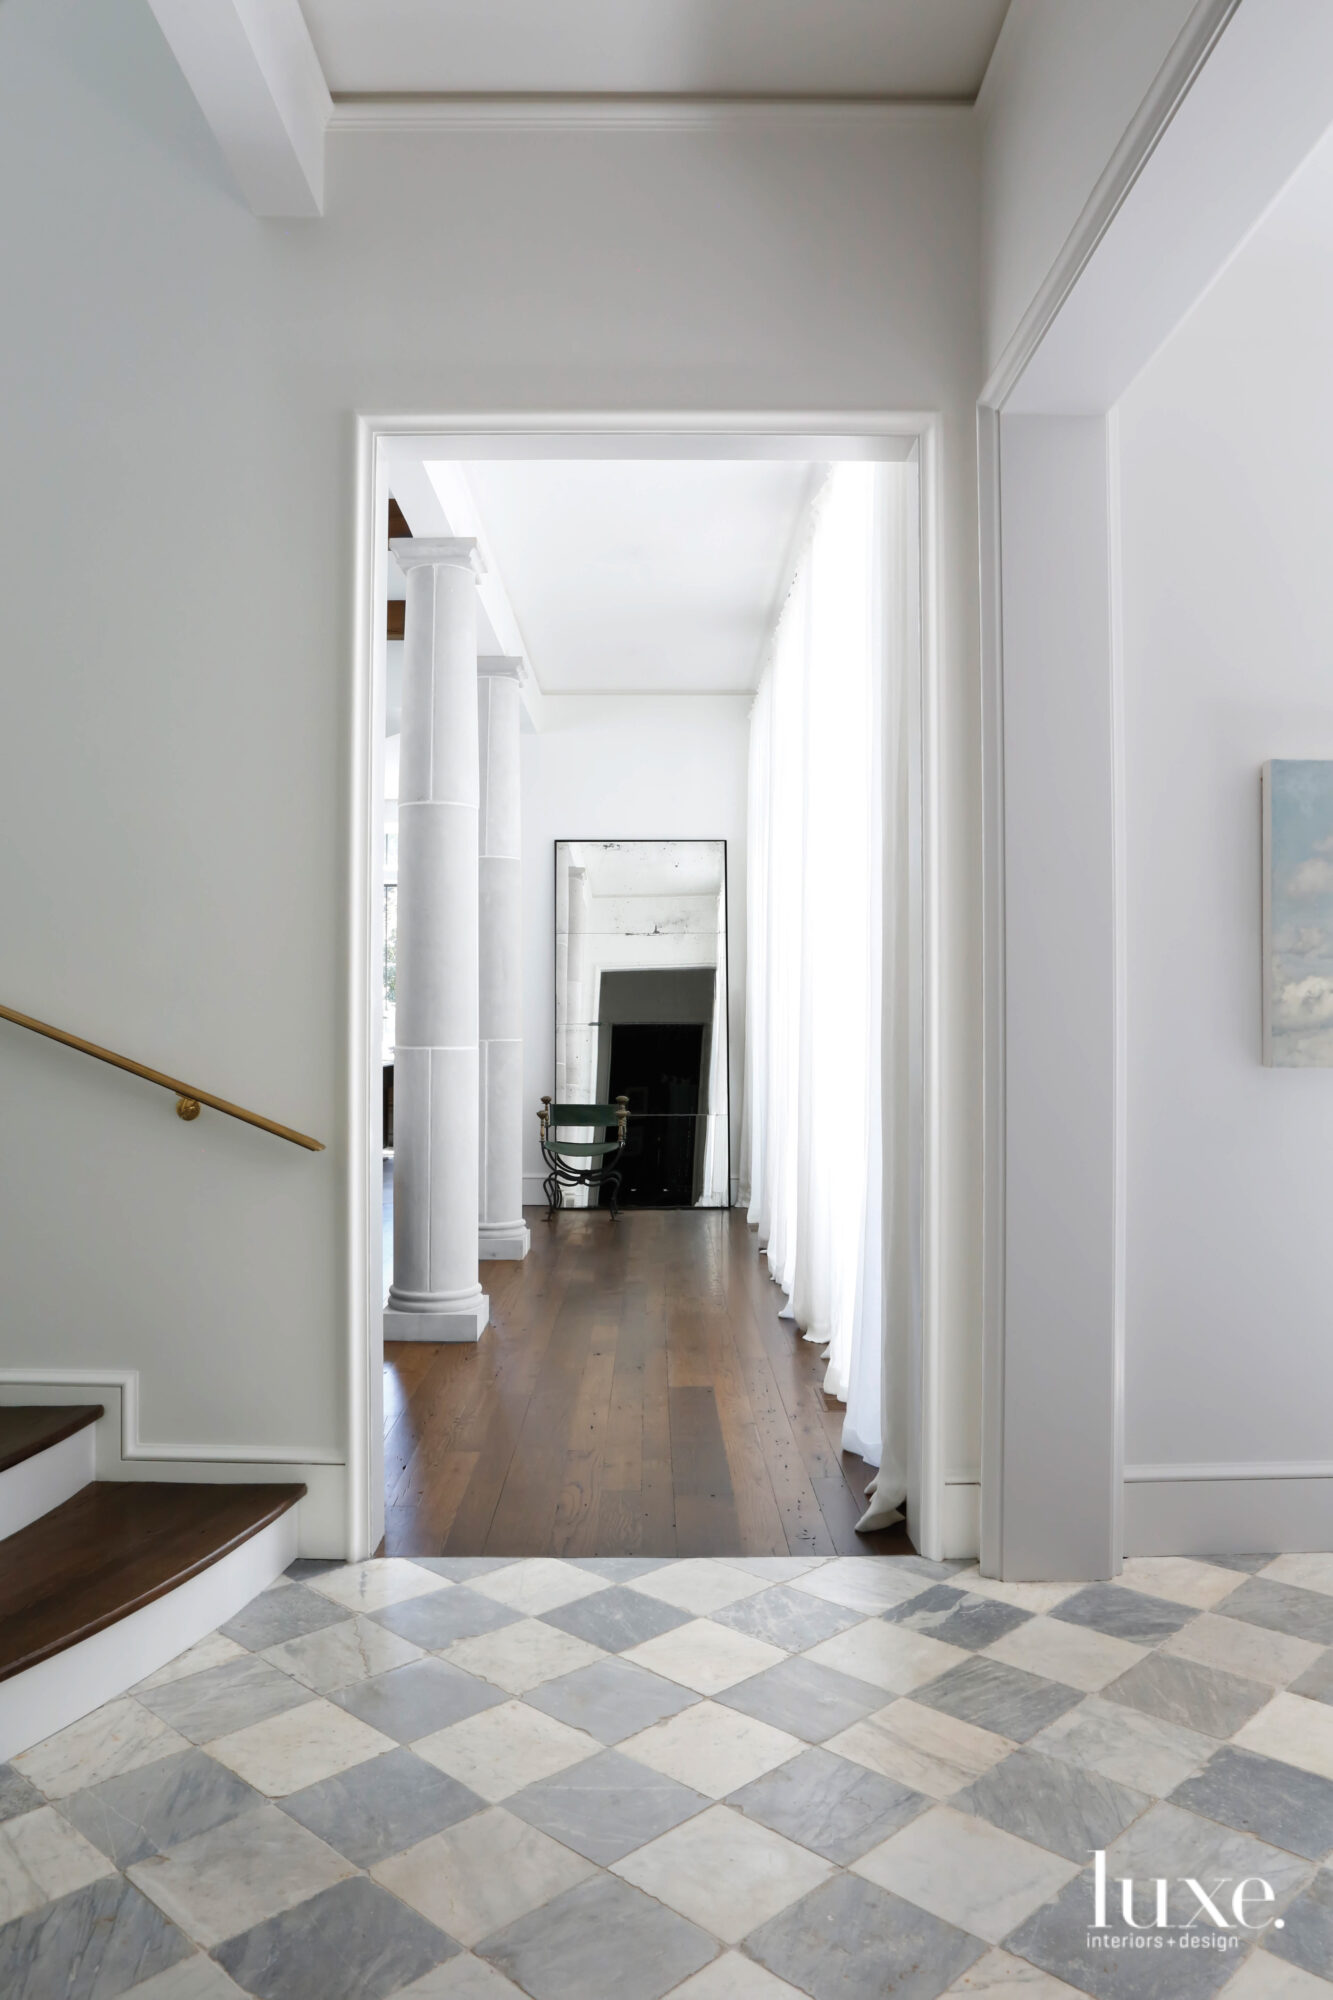 Stair hall leading to long hallway with columns on the left, drapery panels on the right and a leaning tall mirror at center